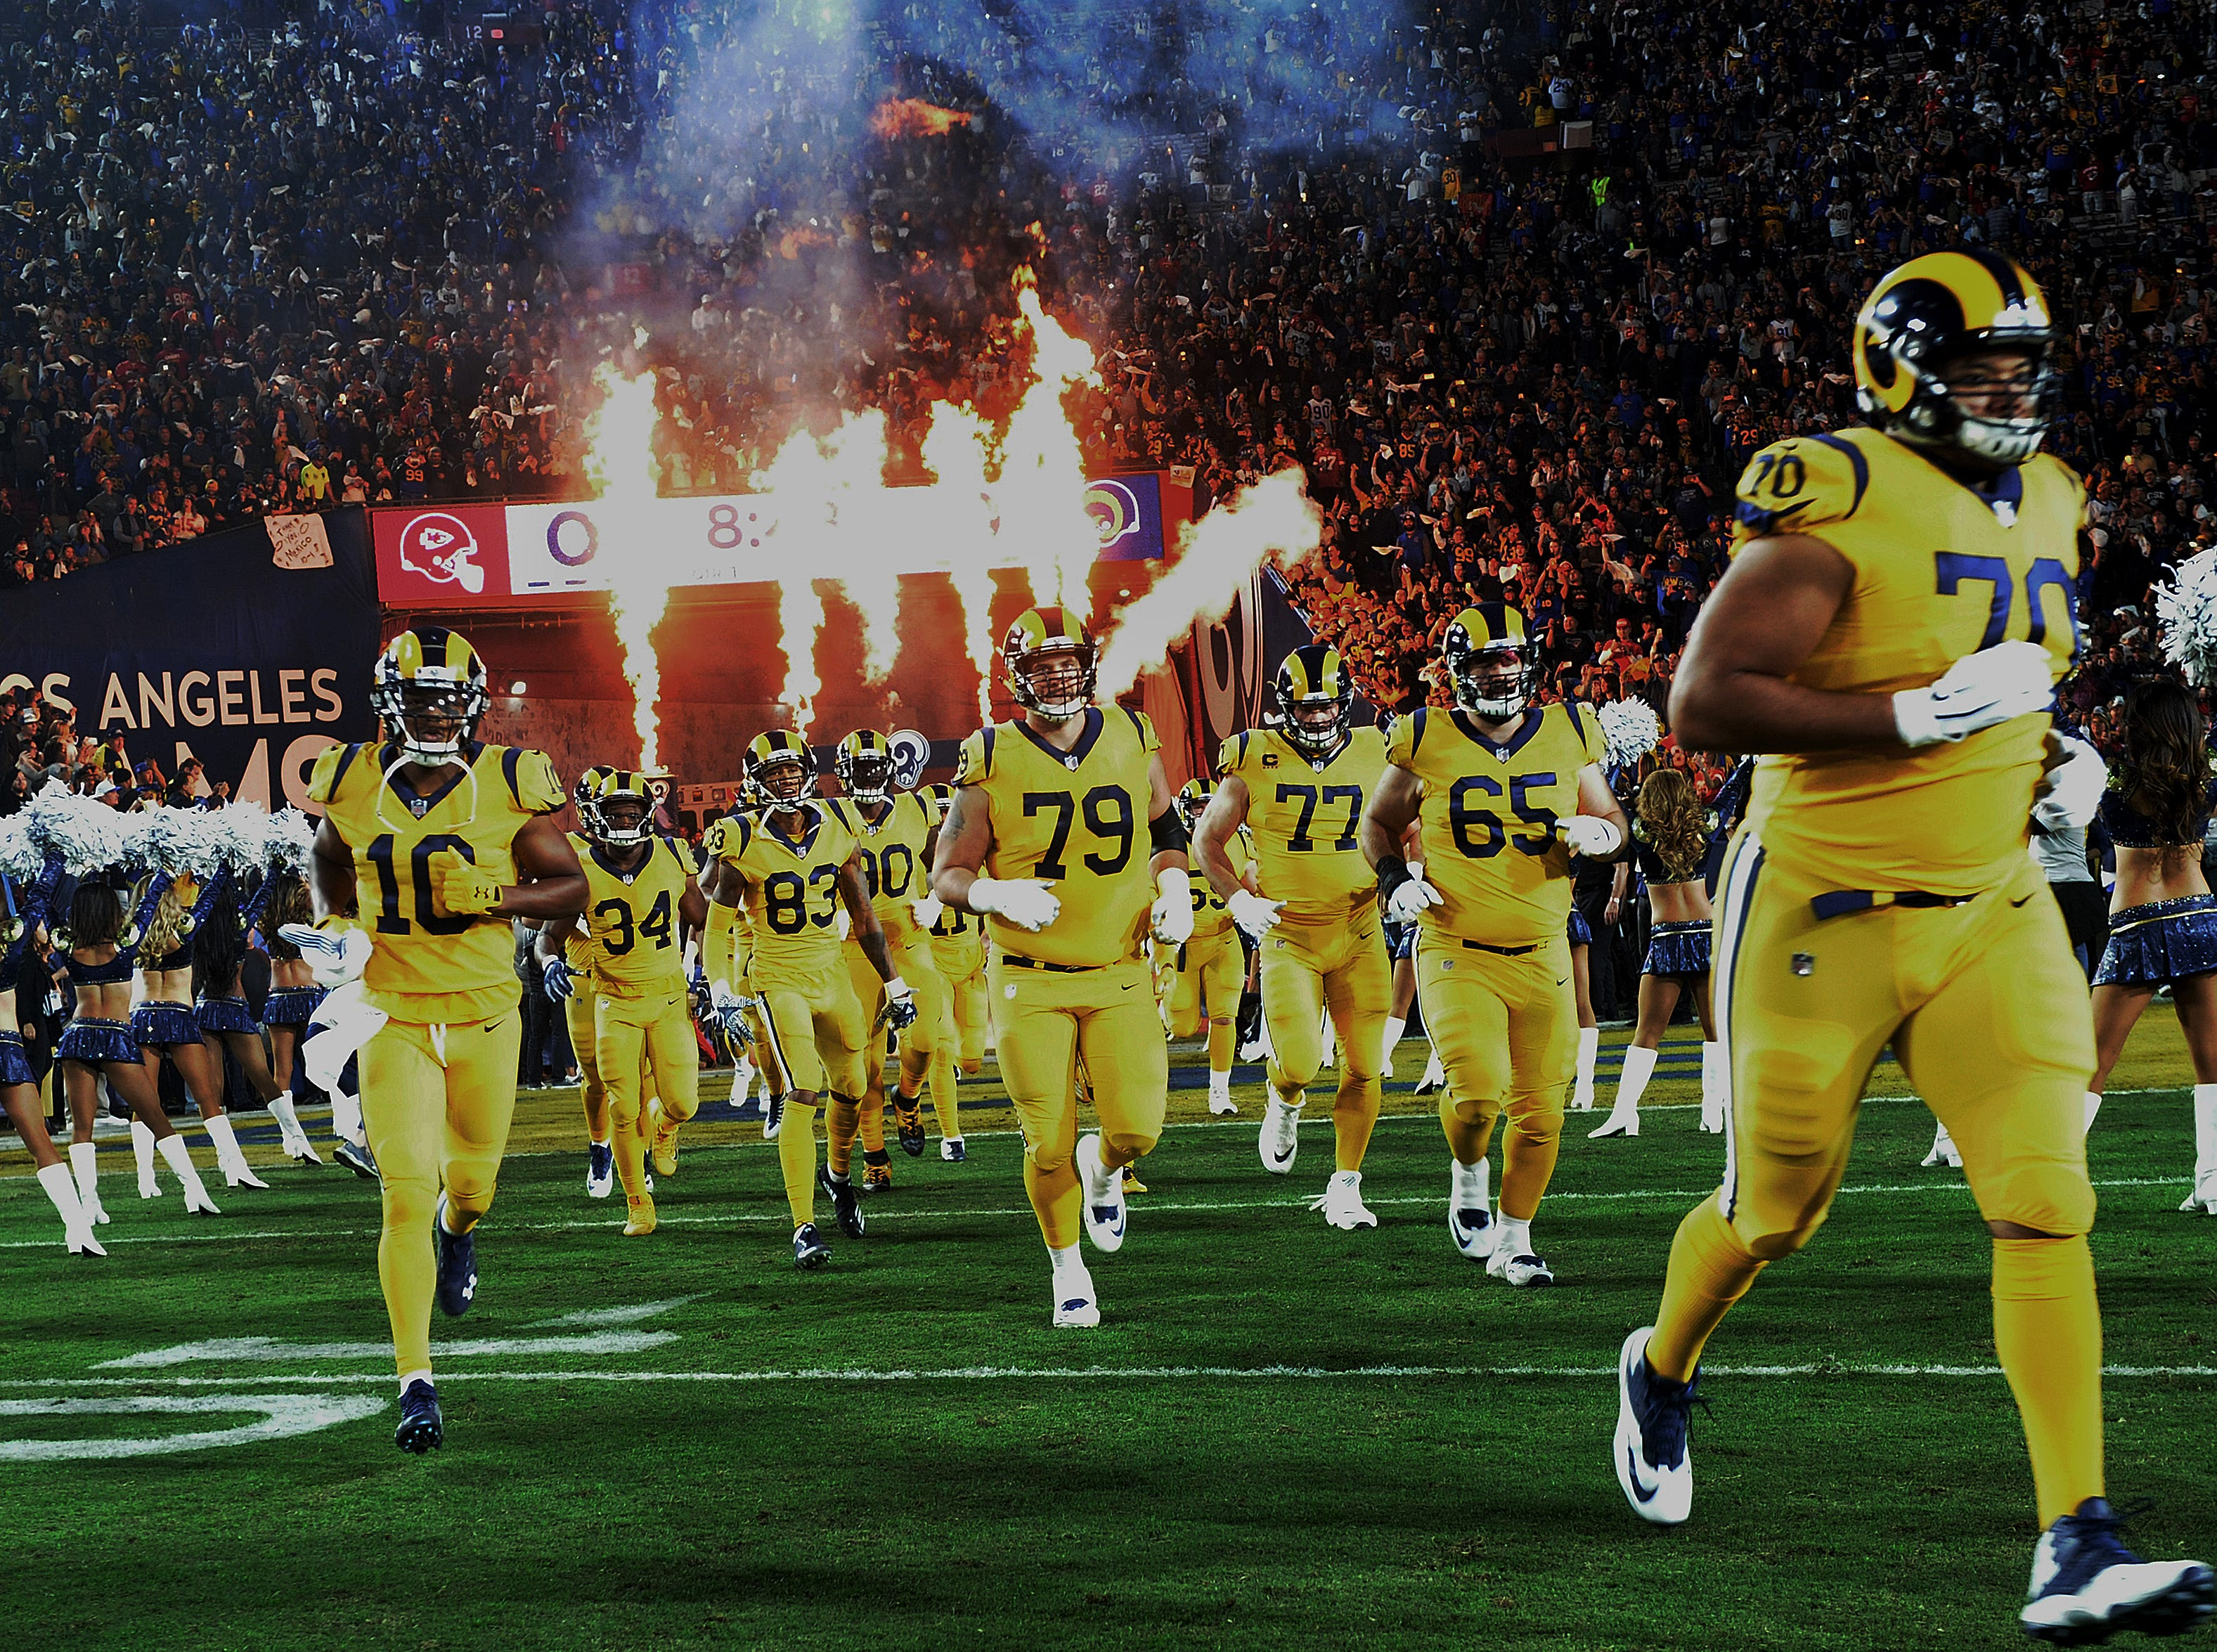 The Rams take the field for Monday night's game against the Chiefs